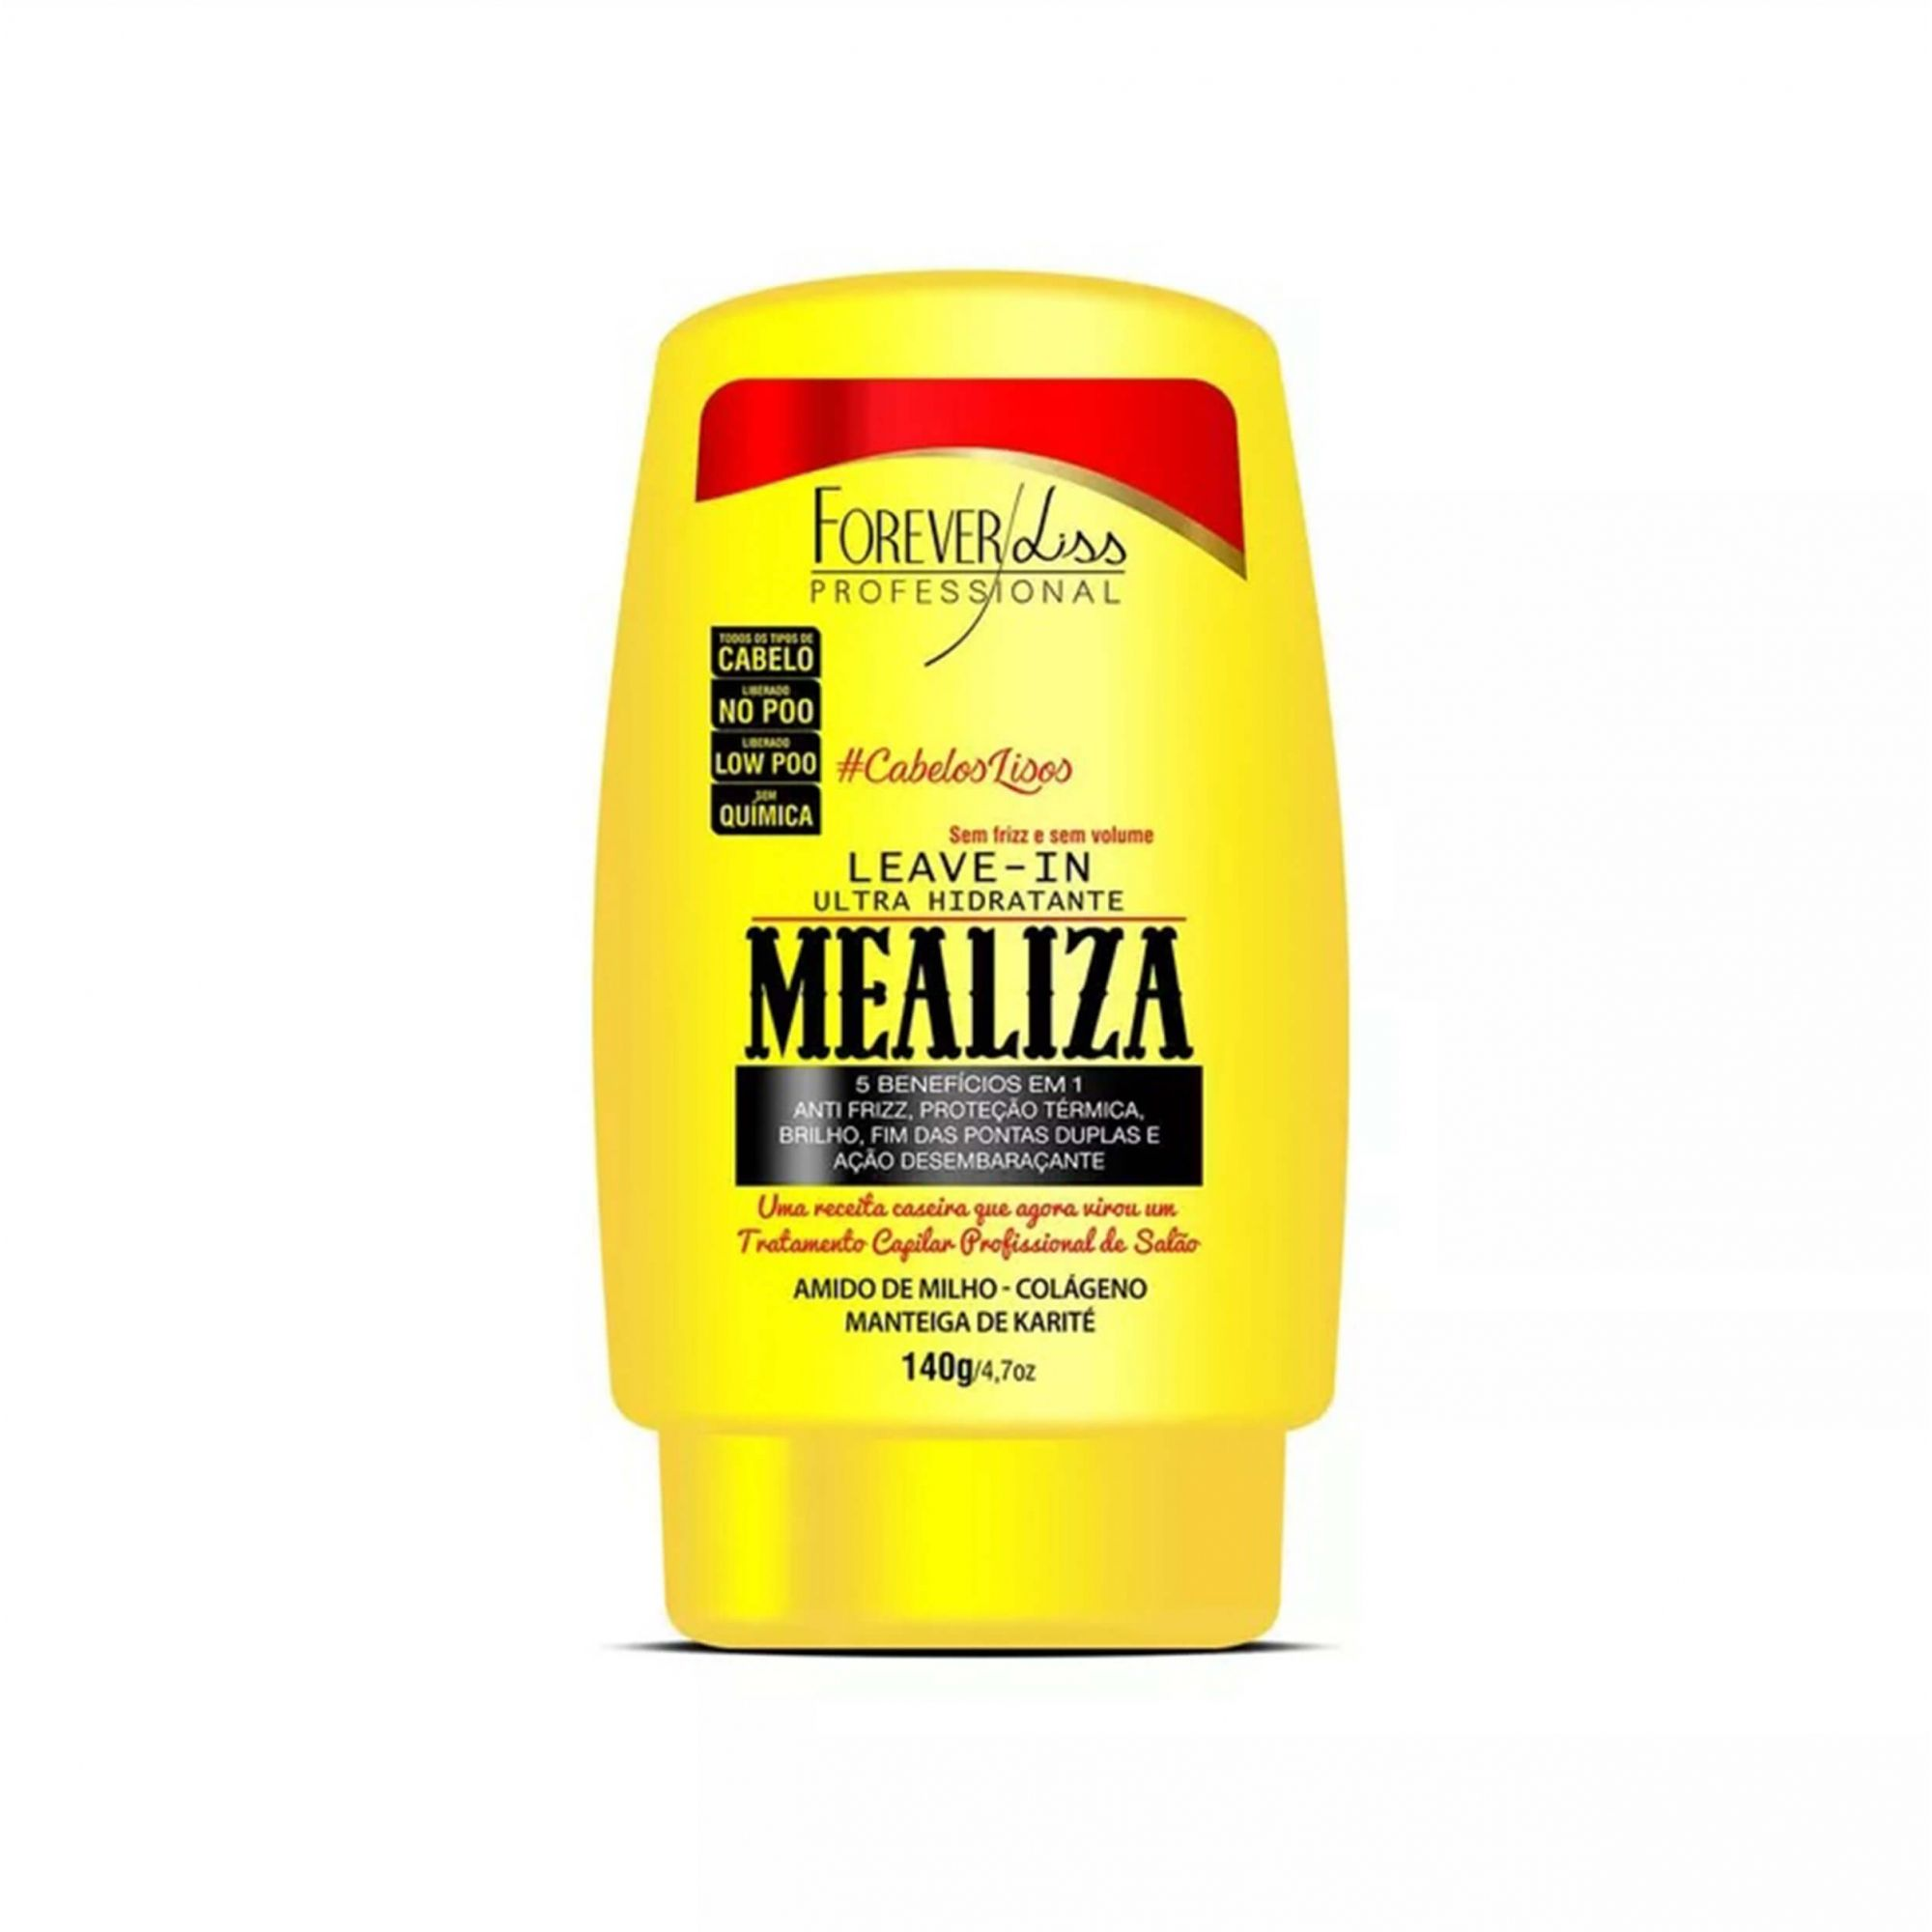 Leave-in Mealiza Forever Liss - 140g